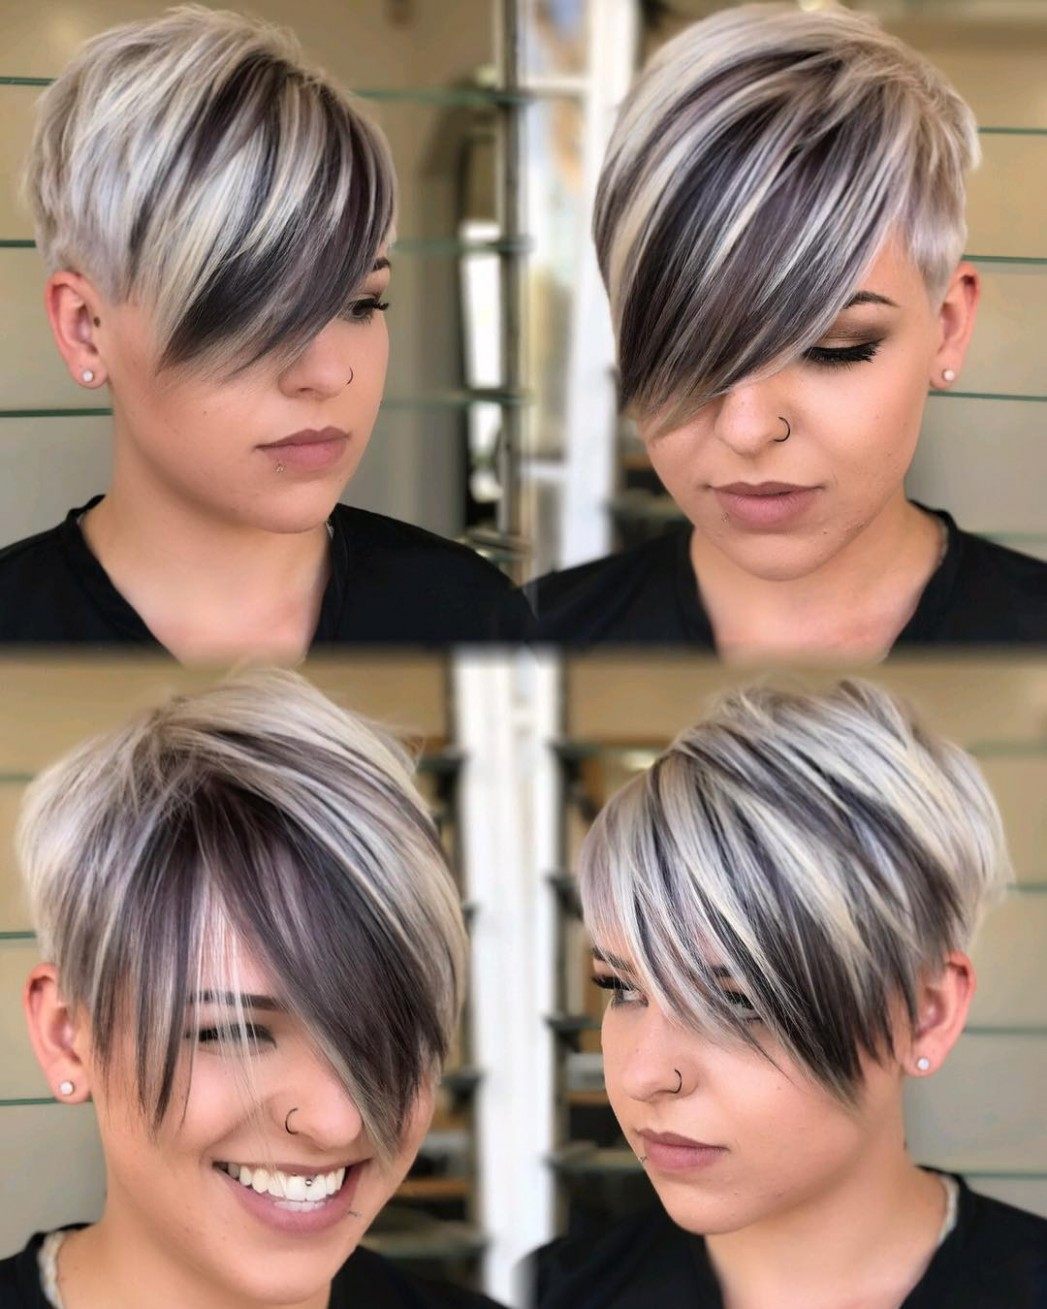 8 Short Hairstyles For Round Faces With Slimming Effect Hadviser Short Cuts For Round Faces